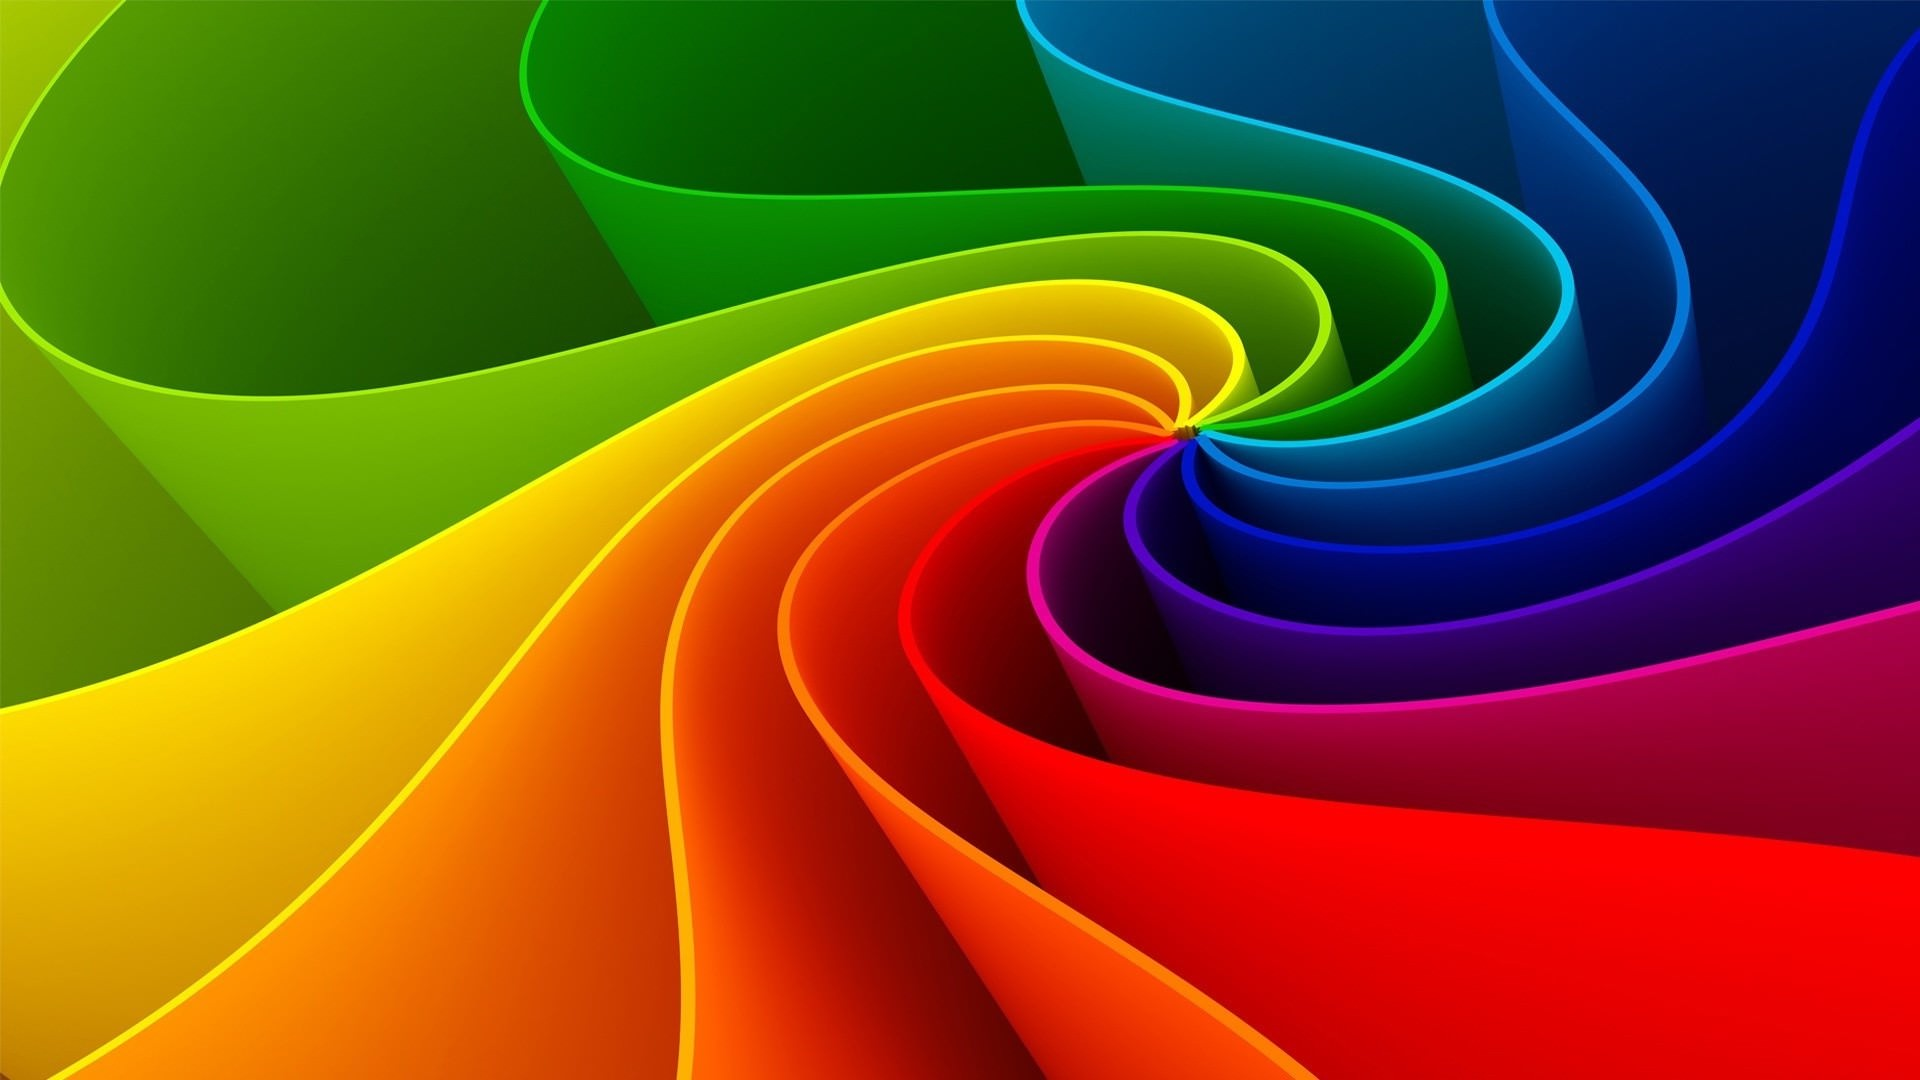 3d Curved Wallpaper 20 Hd Rainbow Background Images And Wallpapers Free